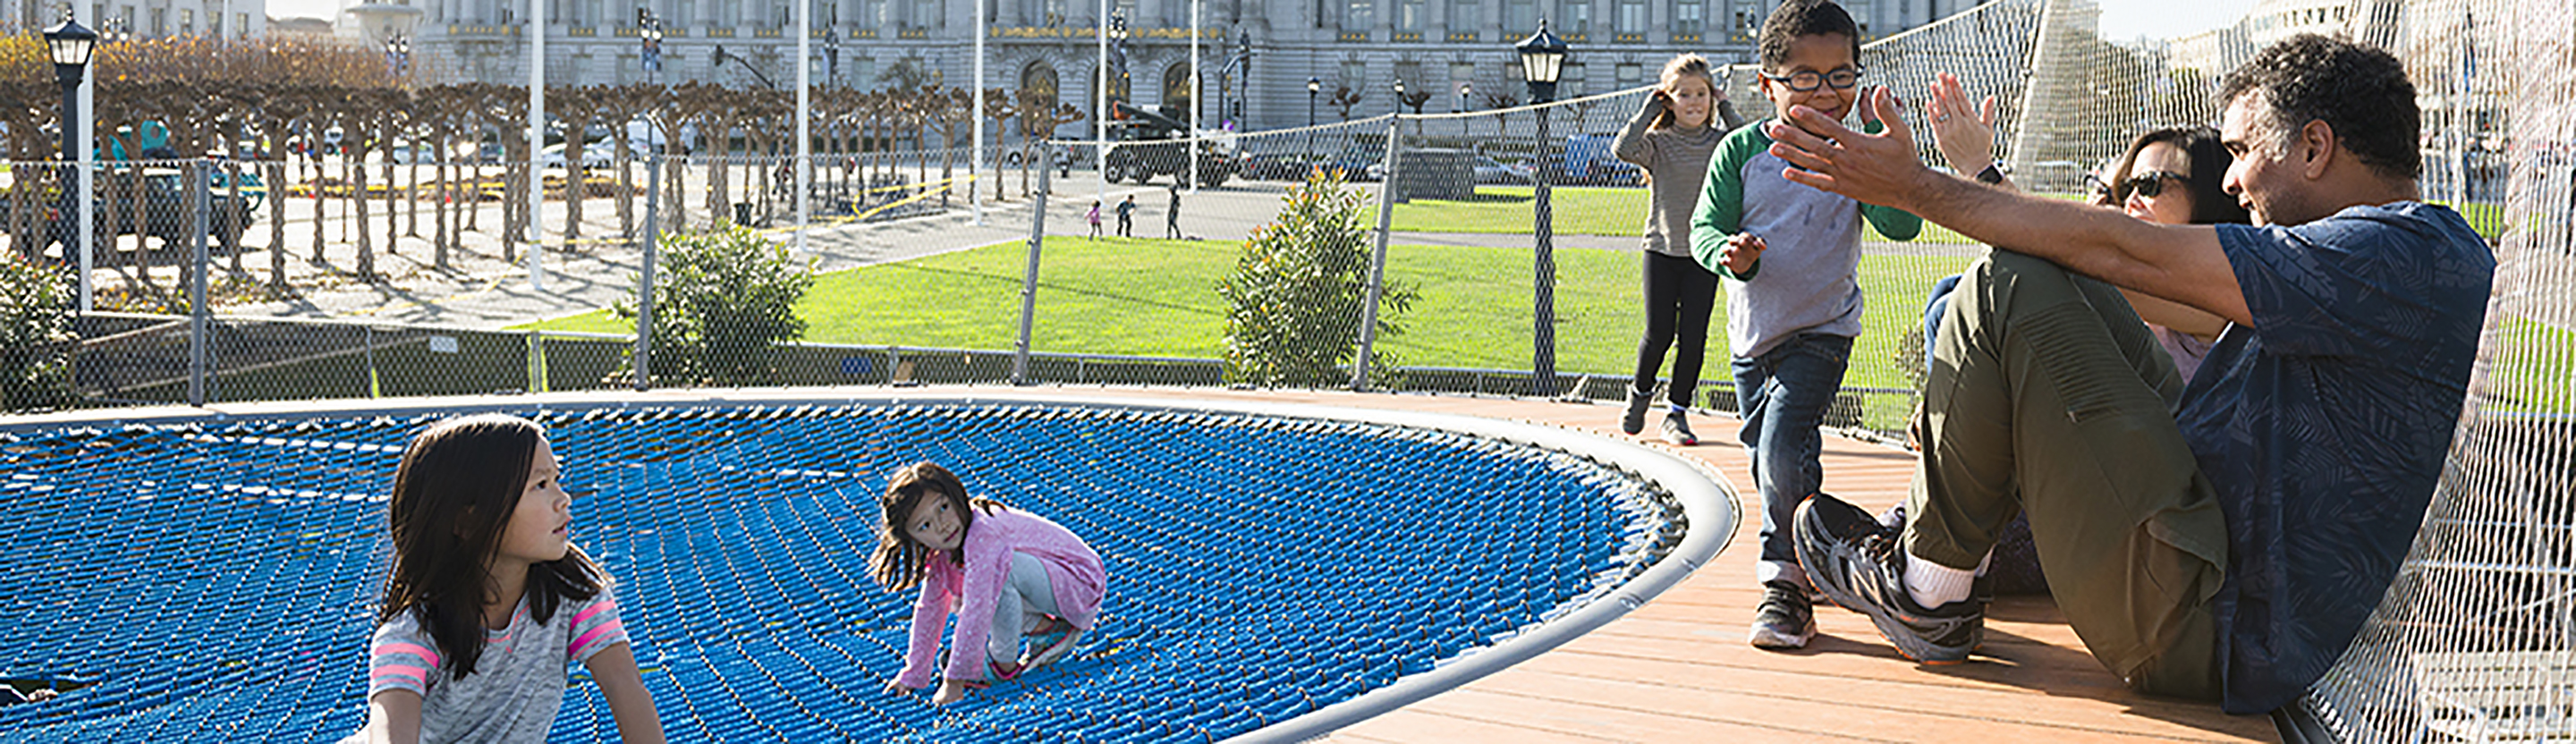 Family enjoying outdoor engagement in San Francisco's Civic Center